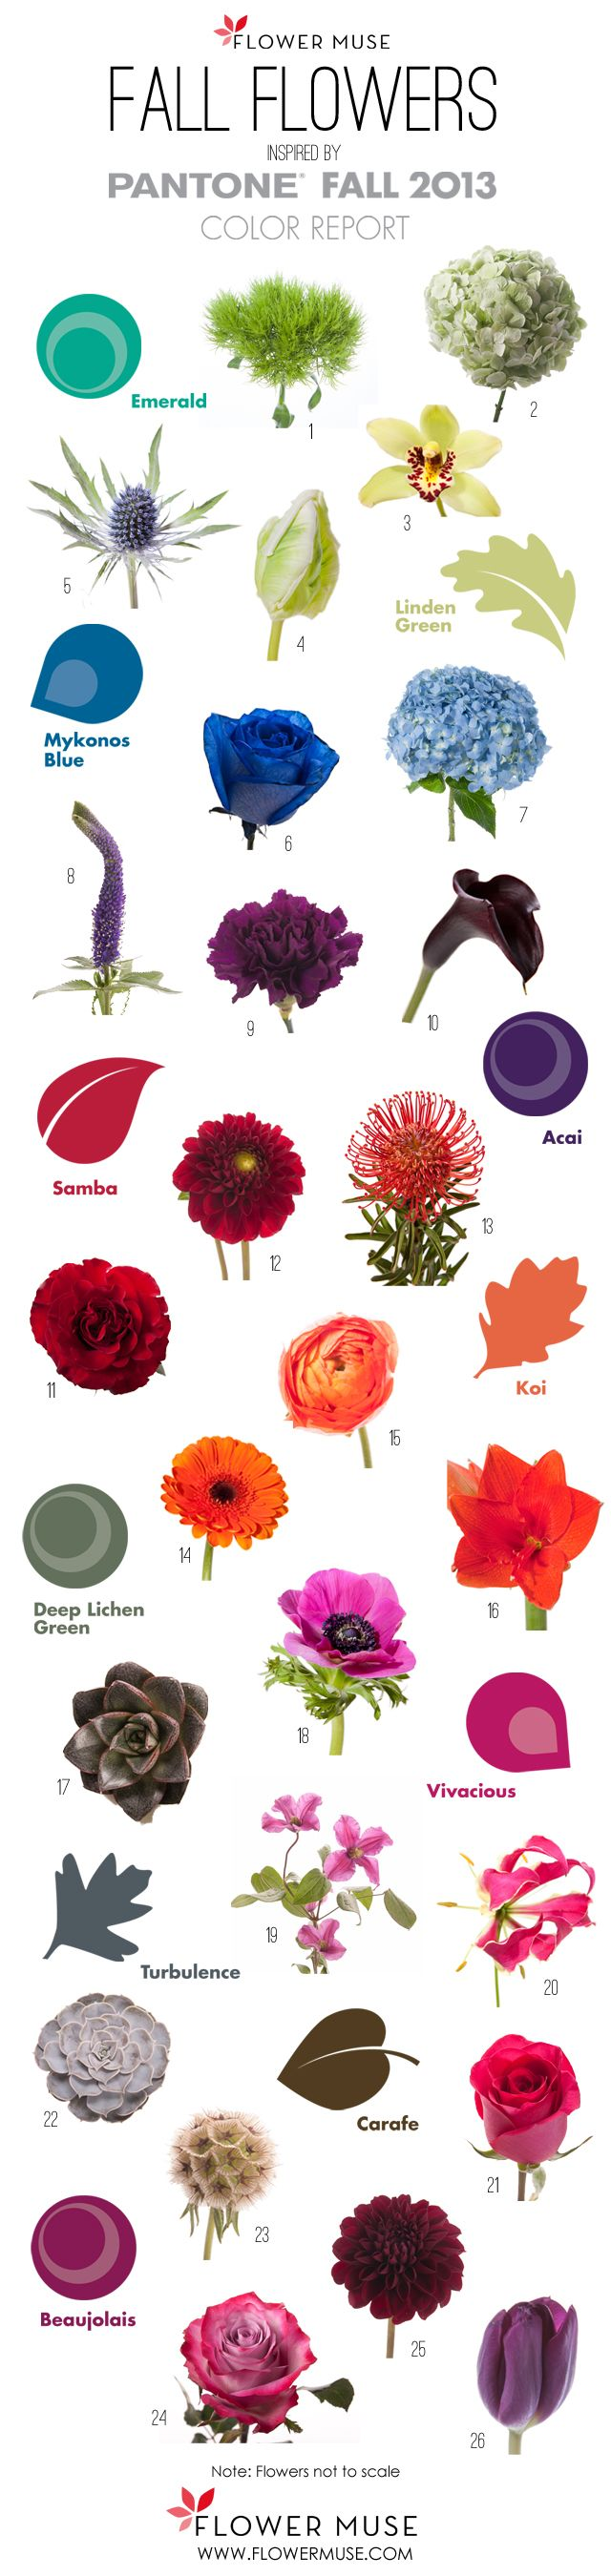 Fall Flowers as inspired by Pantone's 2013 Fall Color Report - on Flower Muse Blog